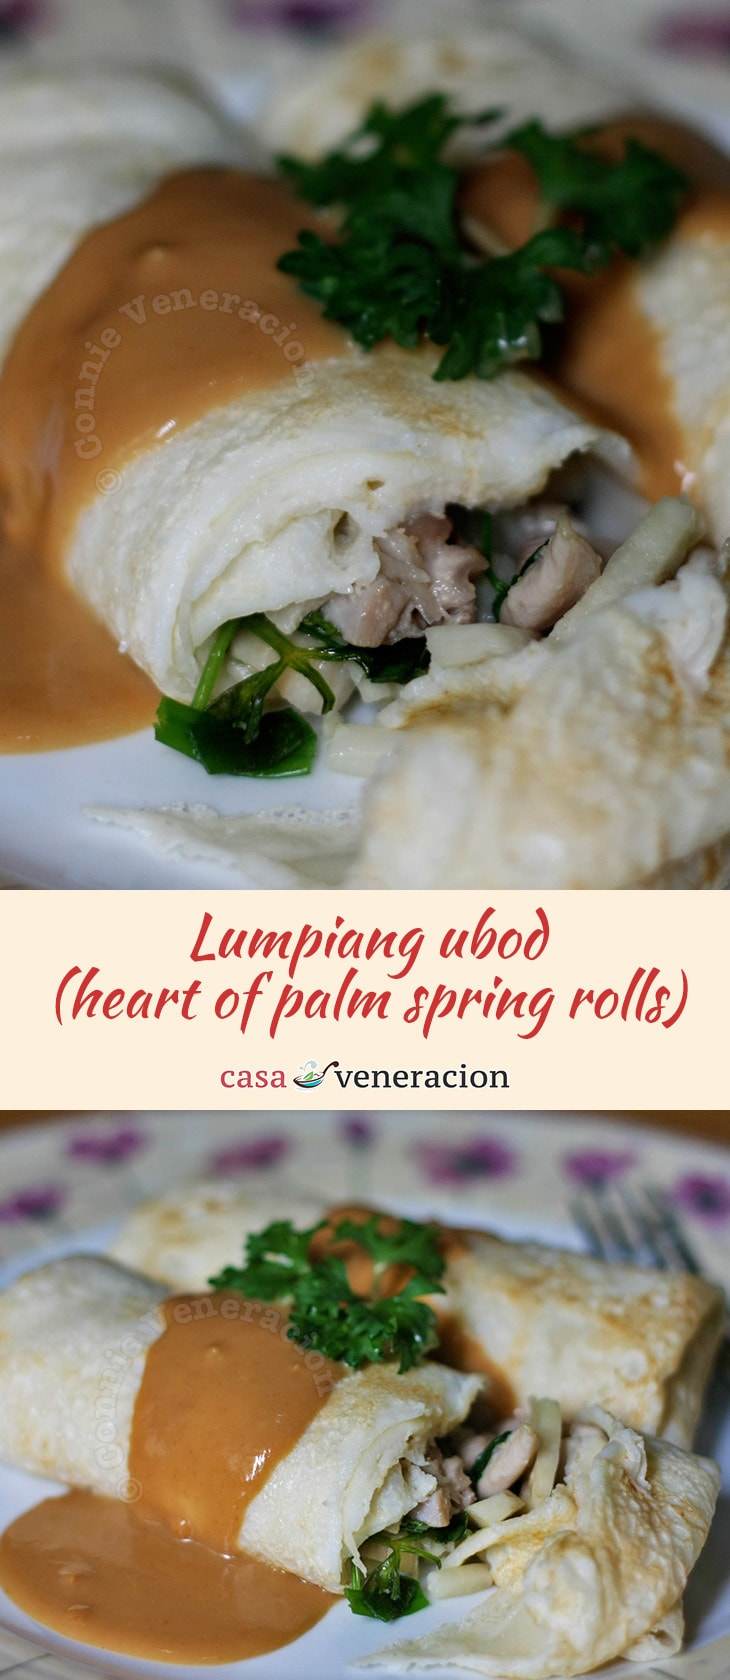 Spring rolls with crepe-like wrapper, heart of palm and meat filling, and a lovely peanut butter and tamarind sauce. A modern take on a Filipino favorite. | casaveneracion.com